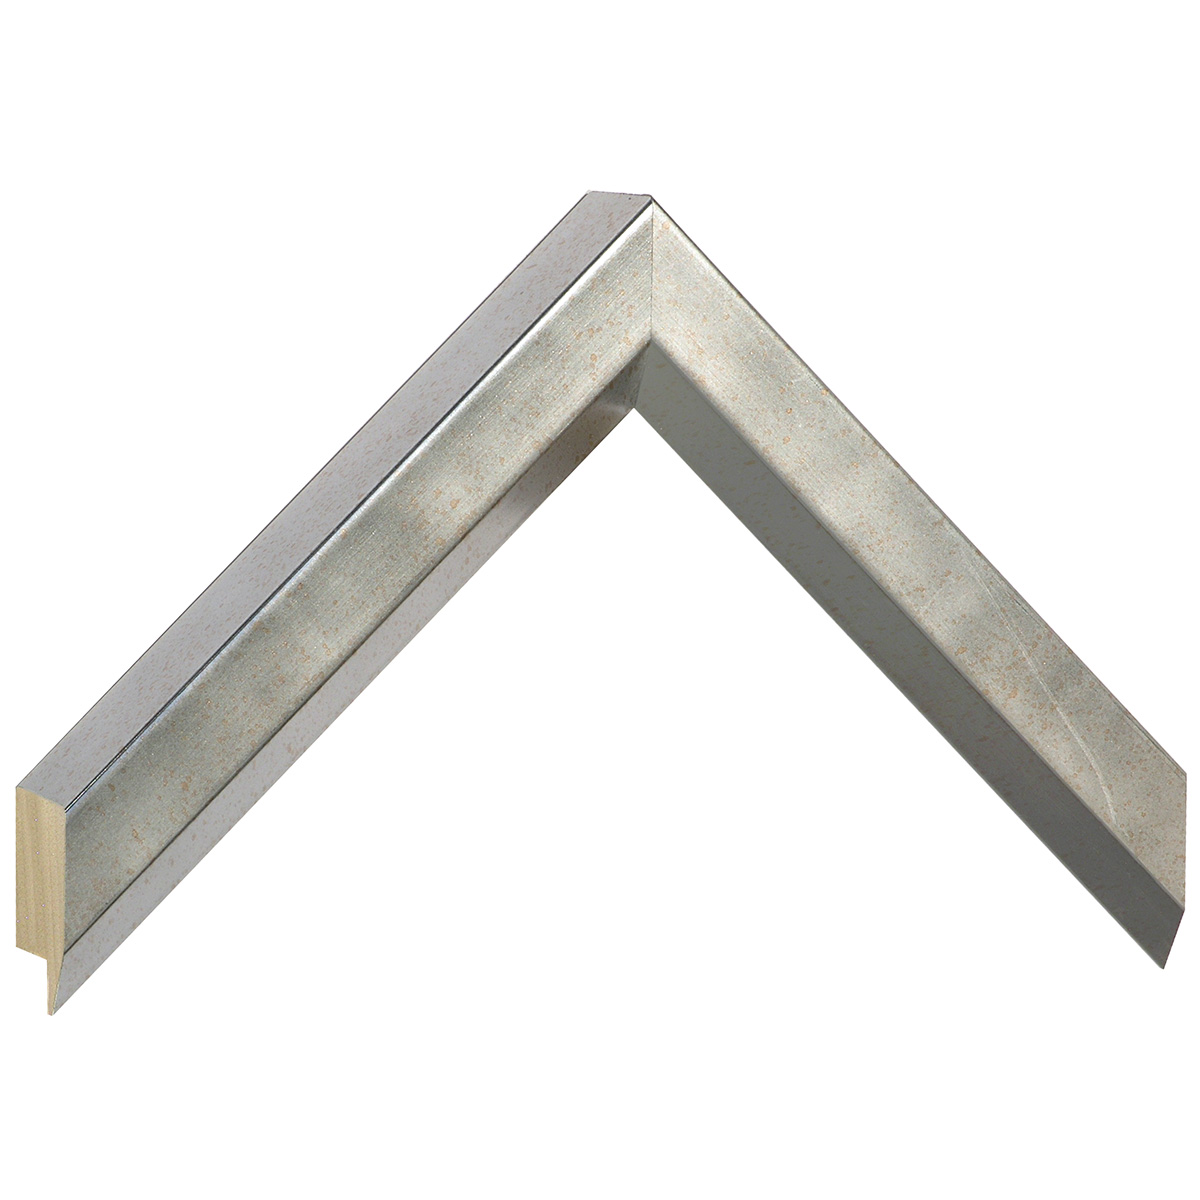 Moulding ayous, width 27mm height 35 - Old silver